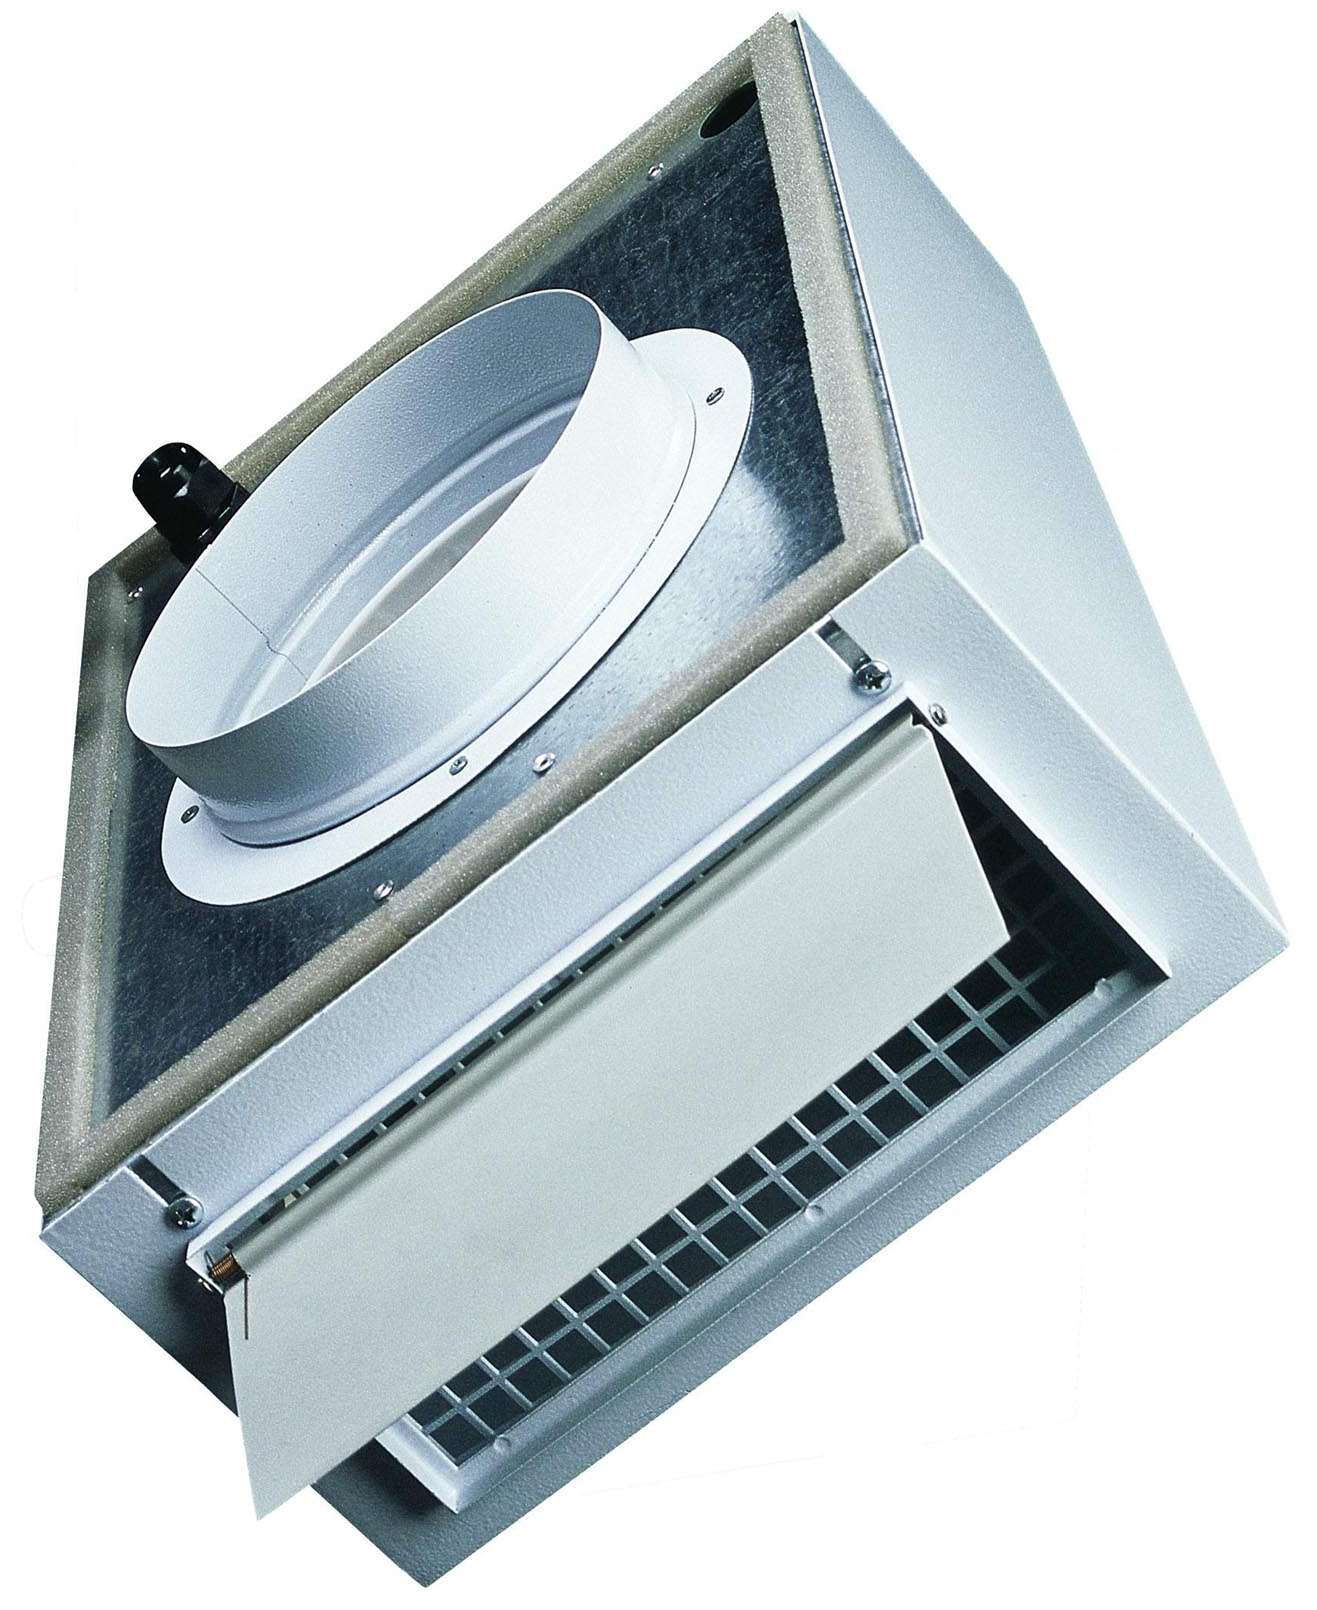 WALL MOUNT BATHROOM EXHAUST FANS Chiller Systems #202E36